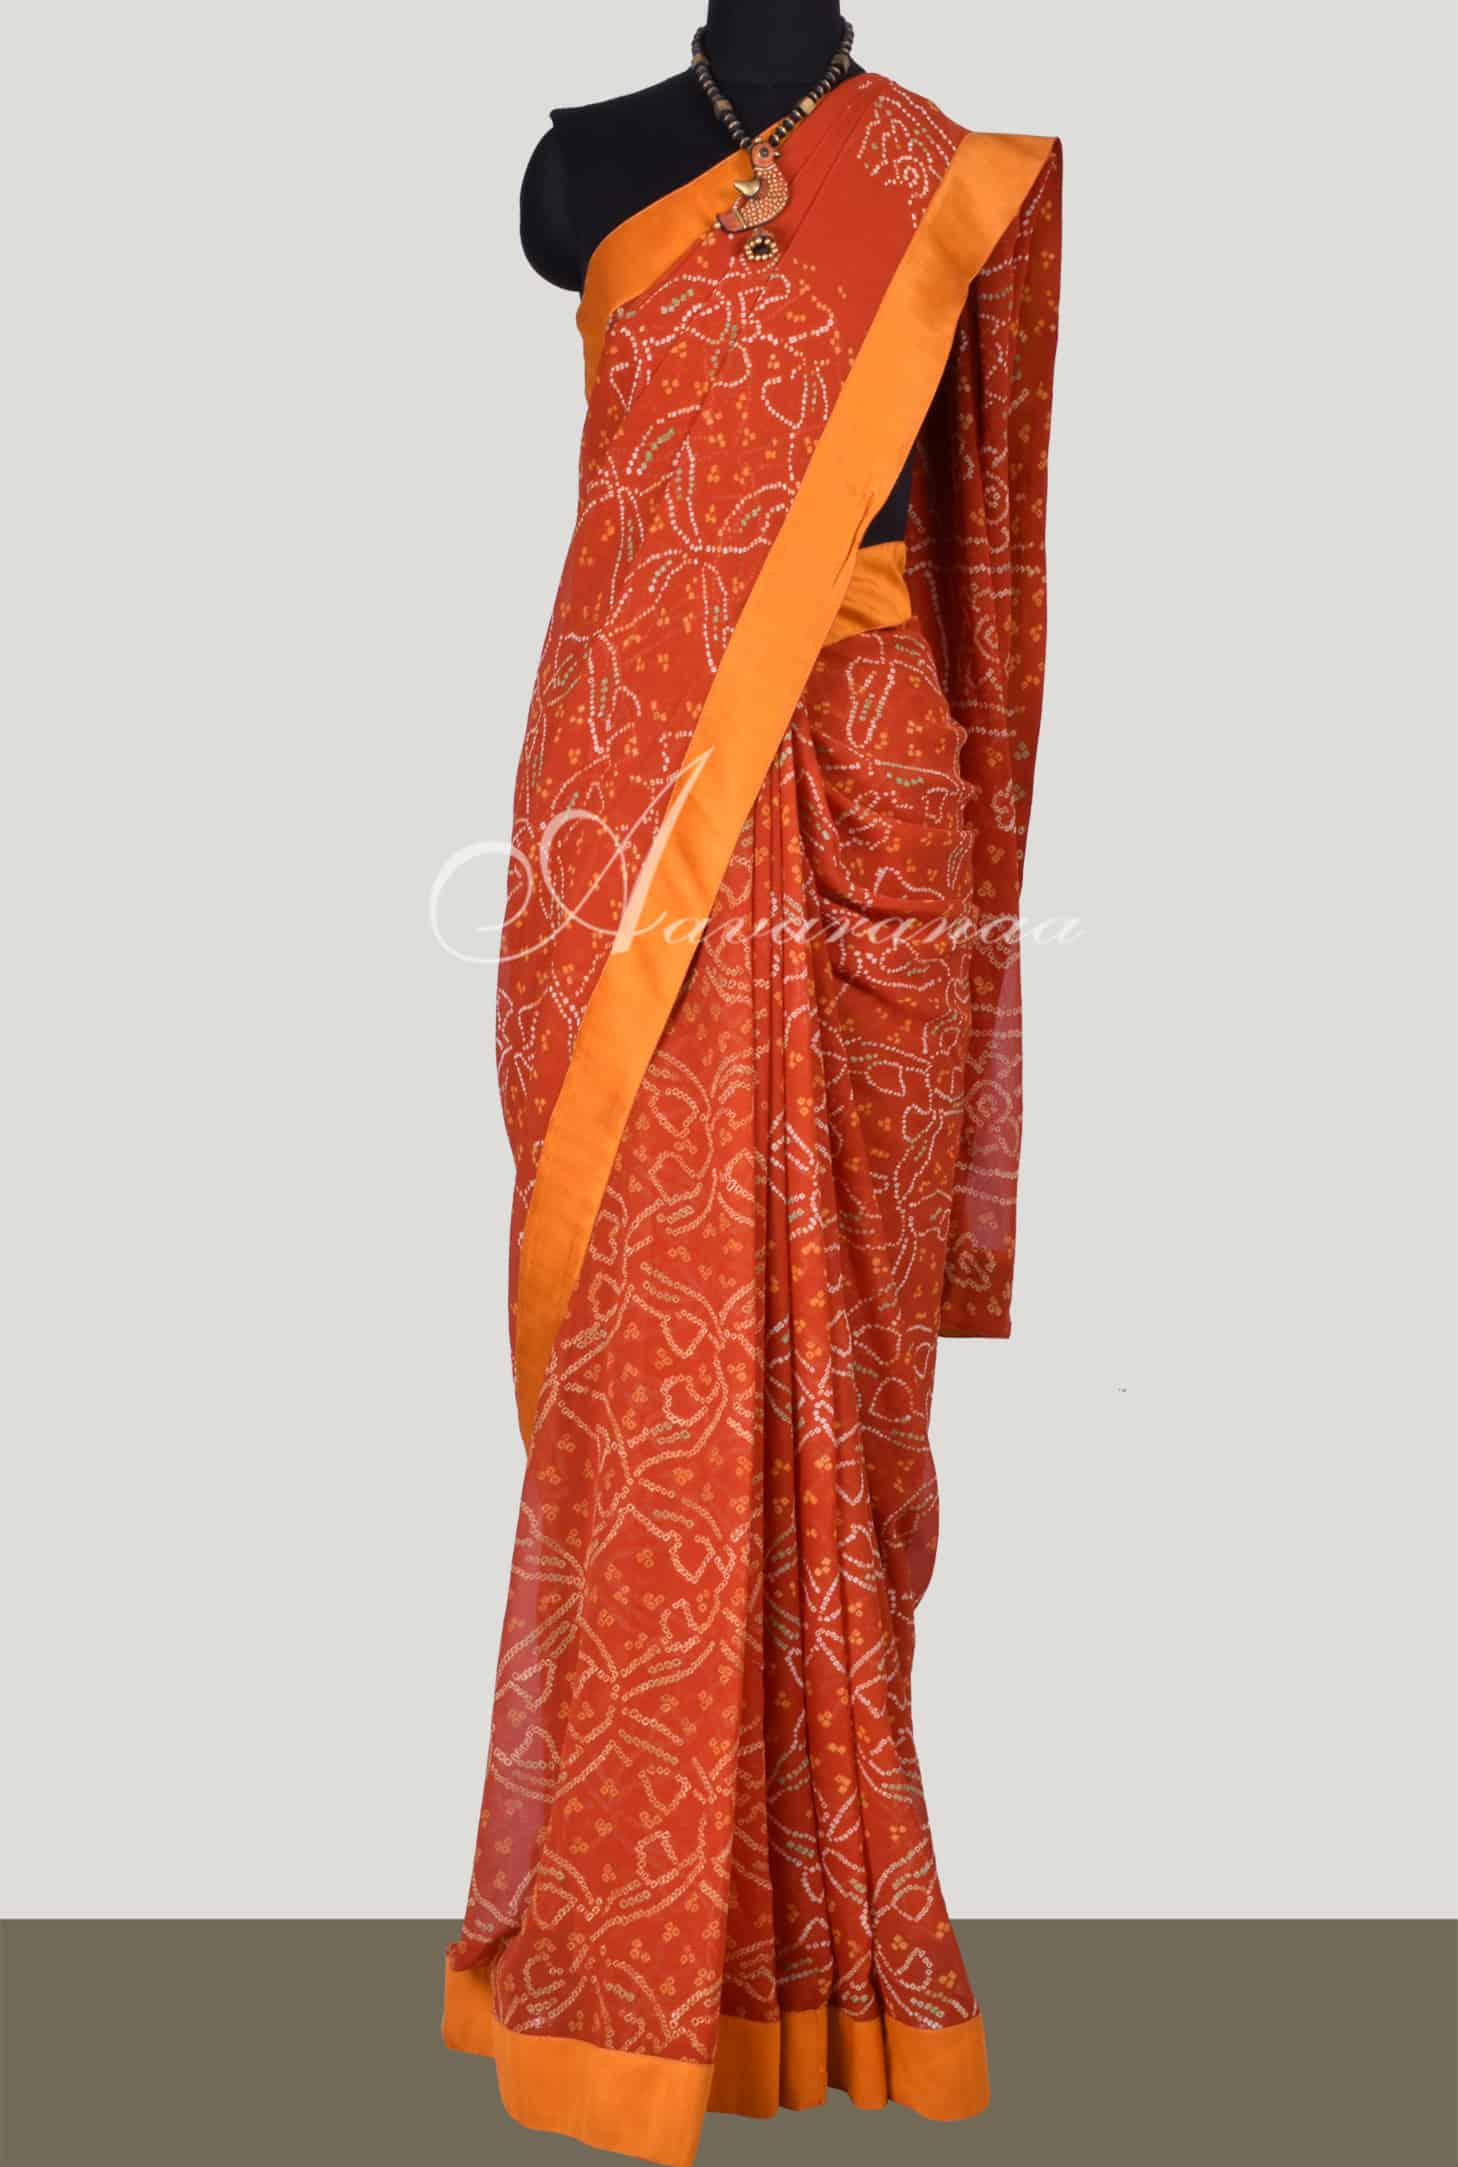 a246c2bb283b2 Saree Burnt Orange Bandhini With Embroidered Blouse